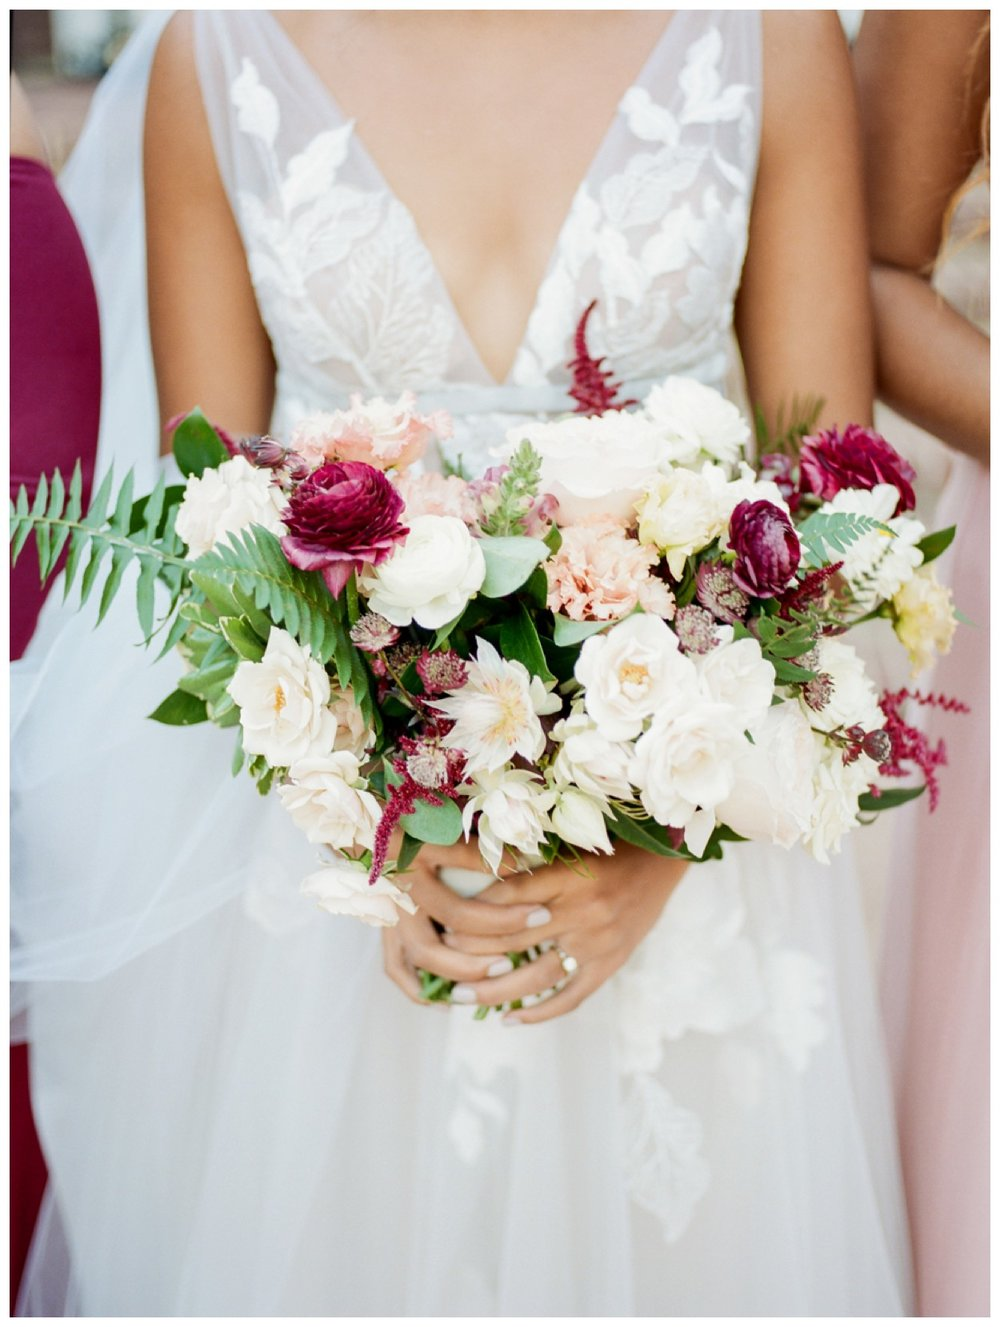 Sun drenched fall wedding in shades of pink at Oxon Hill Manor in Maryland bridal bouquet by Washington DC fine art photographer Lissa Ryan Photography